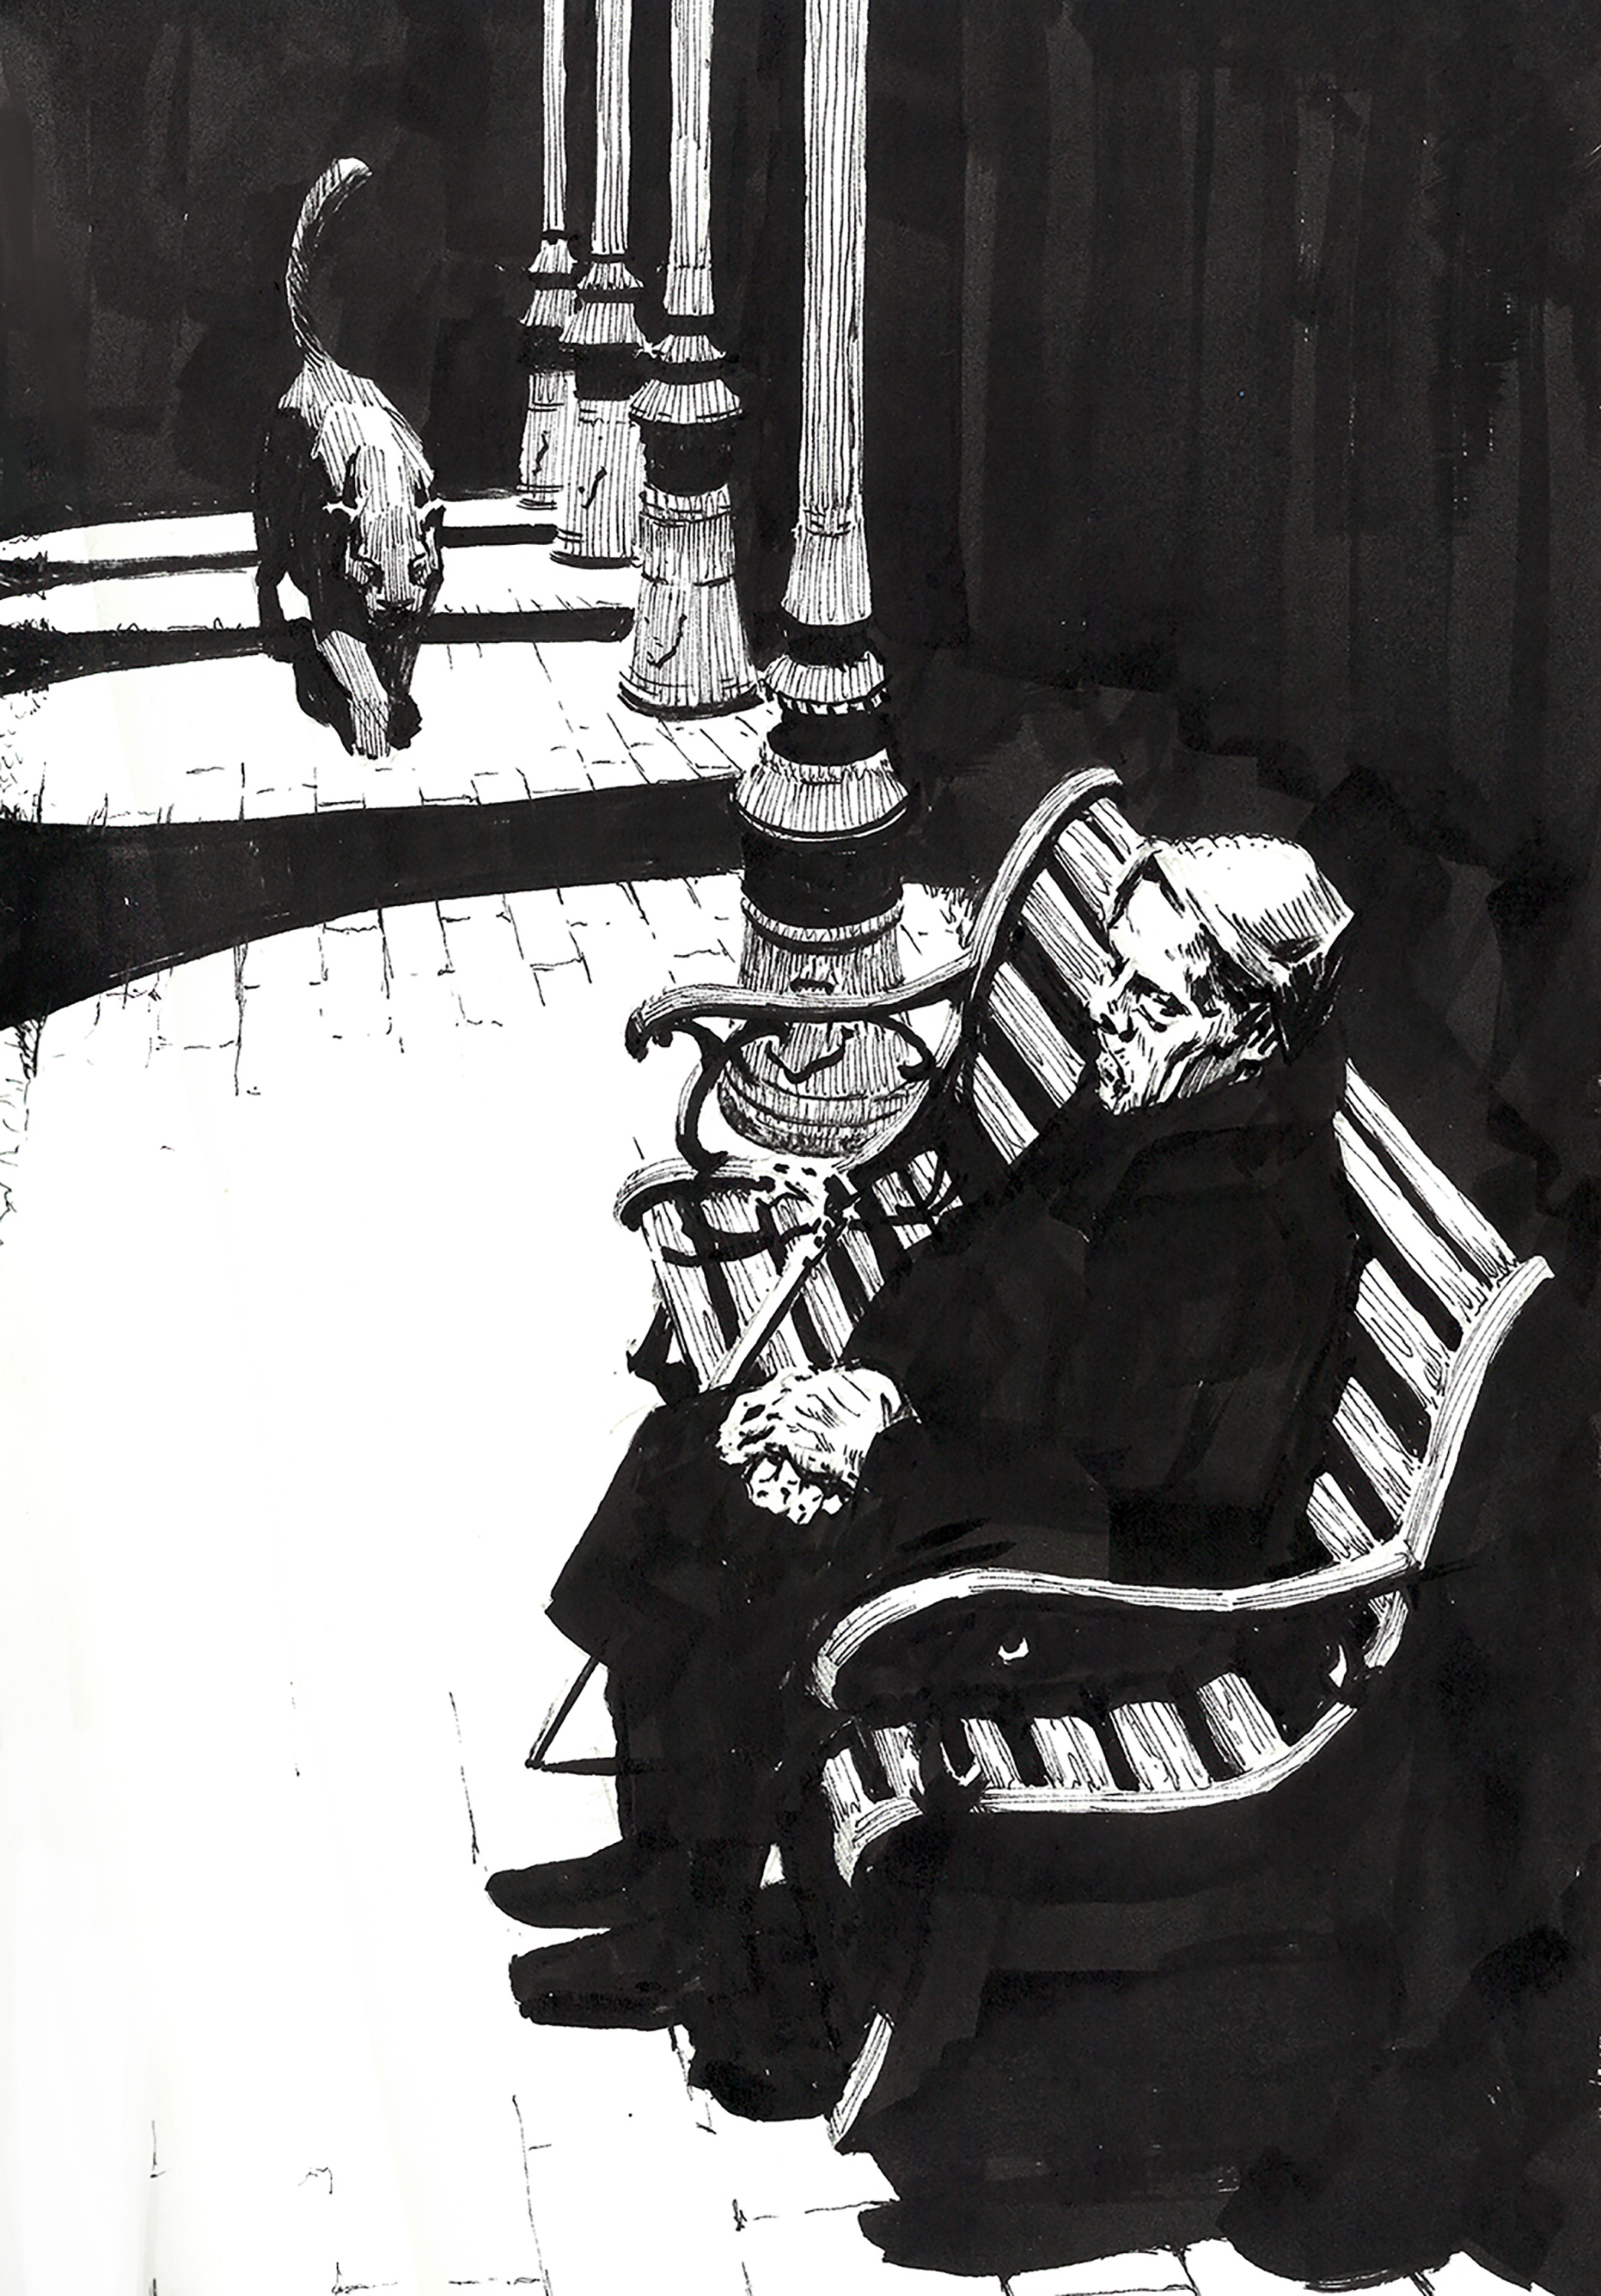 Black Cat Ink on Paper - Original Available